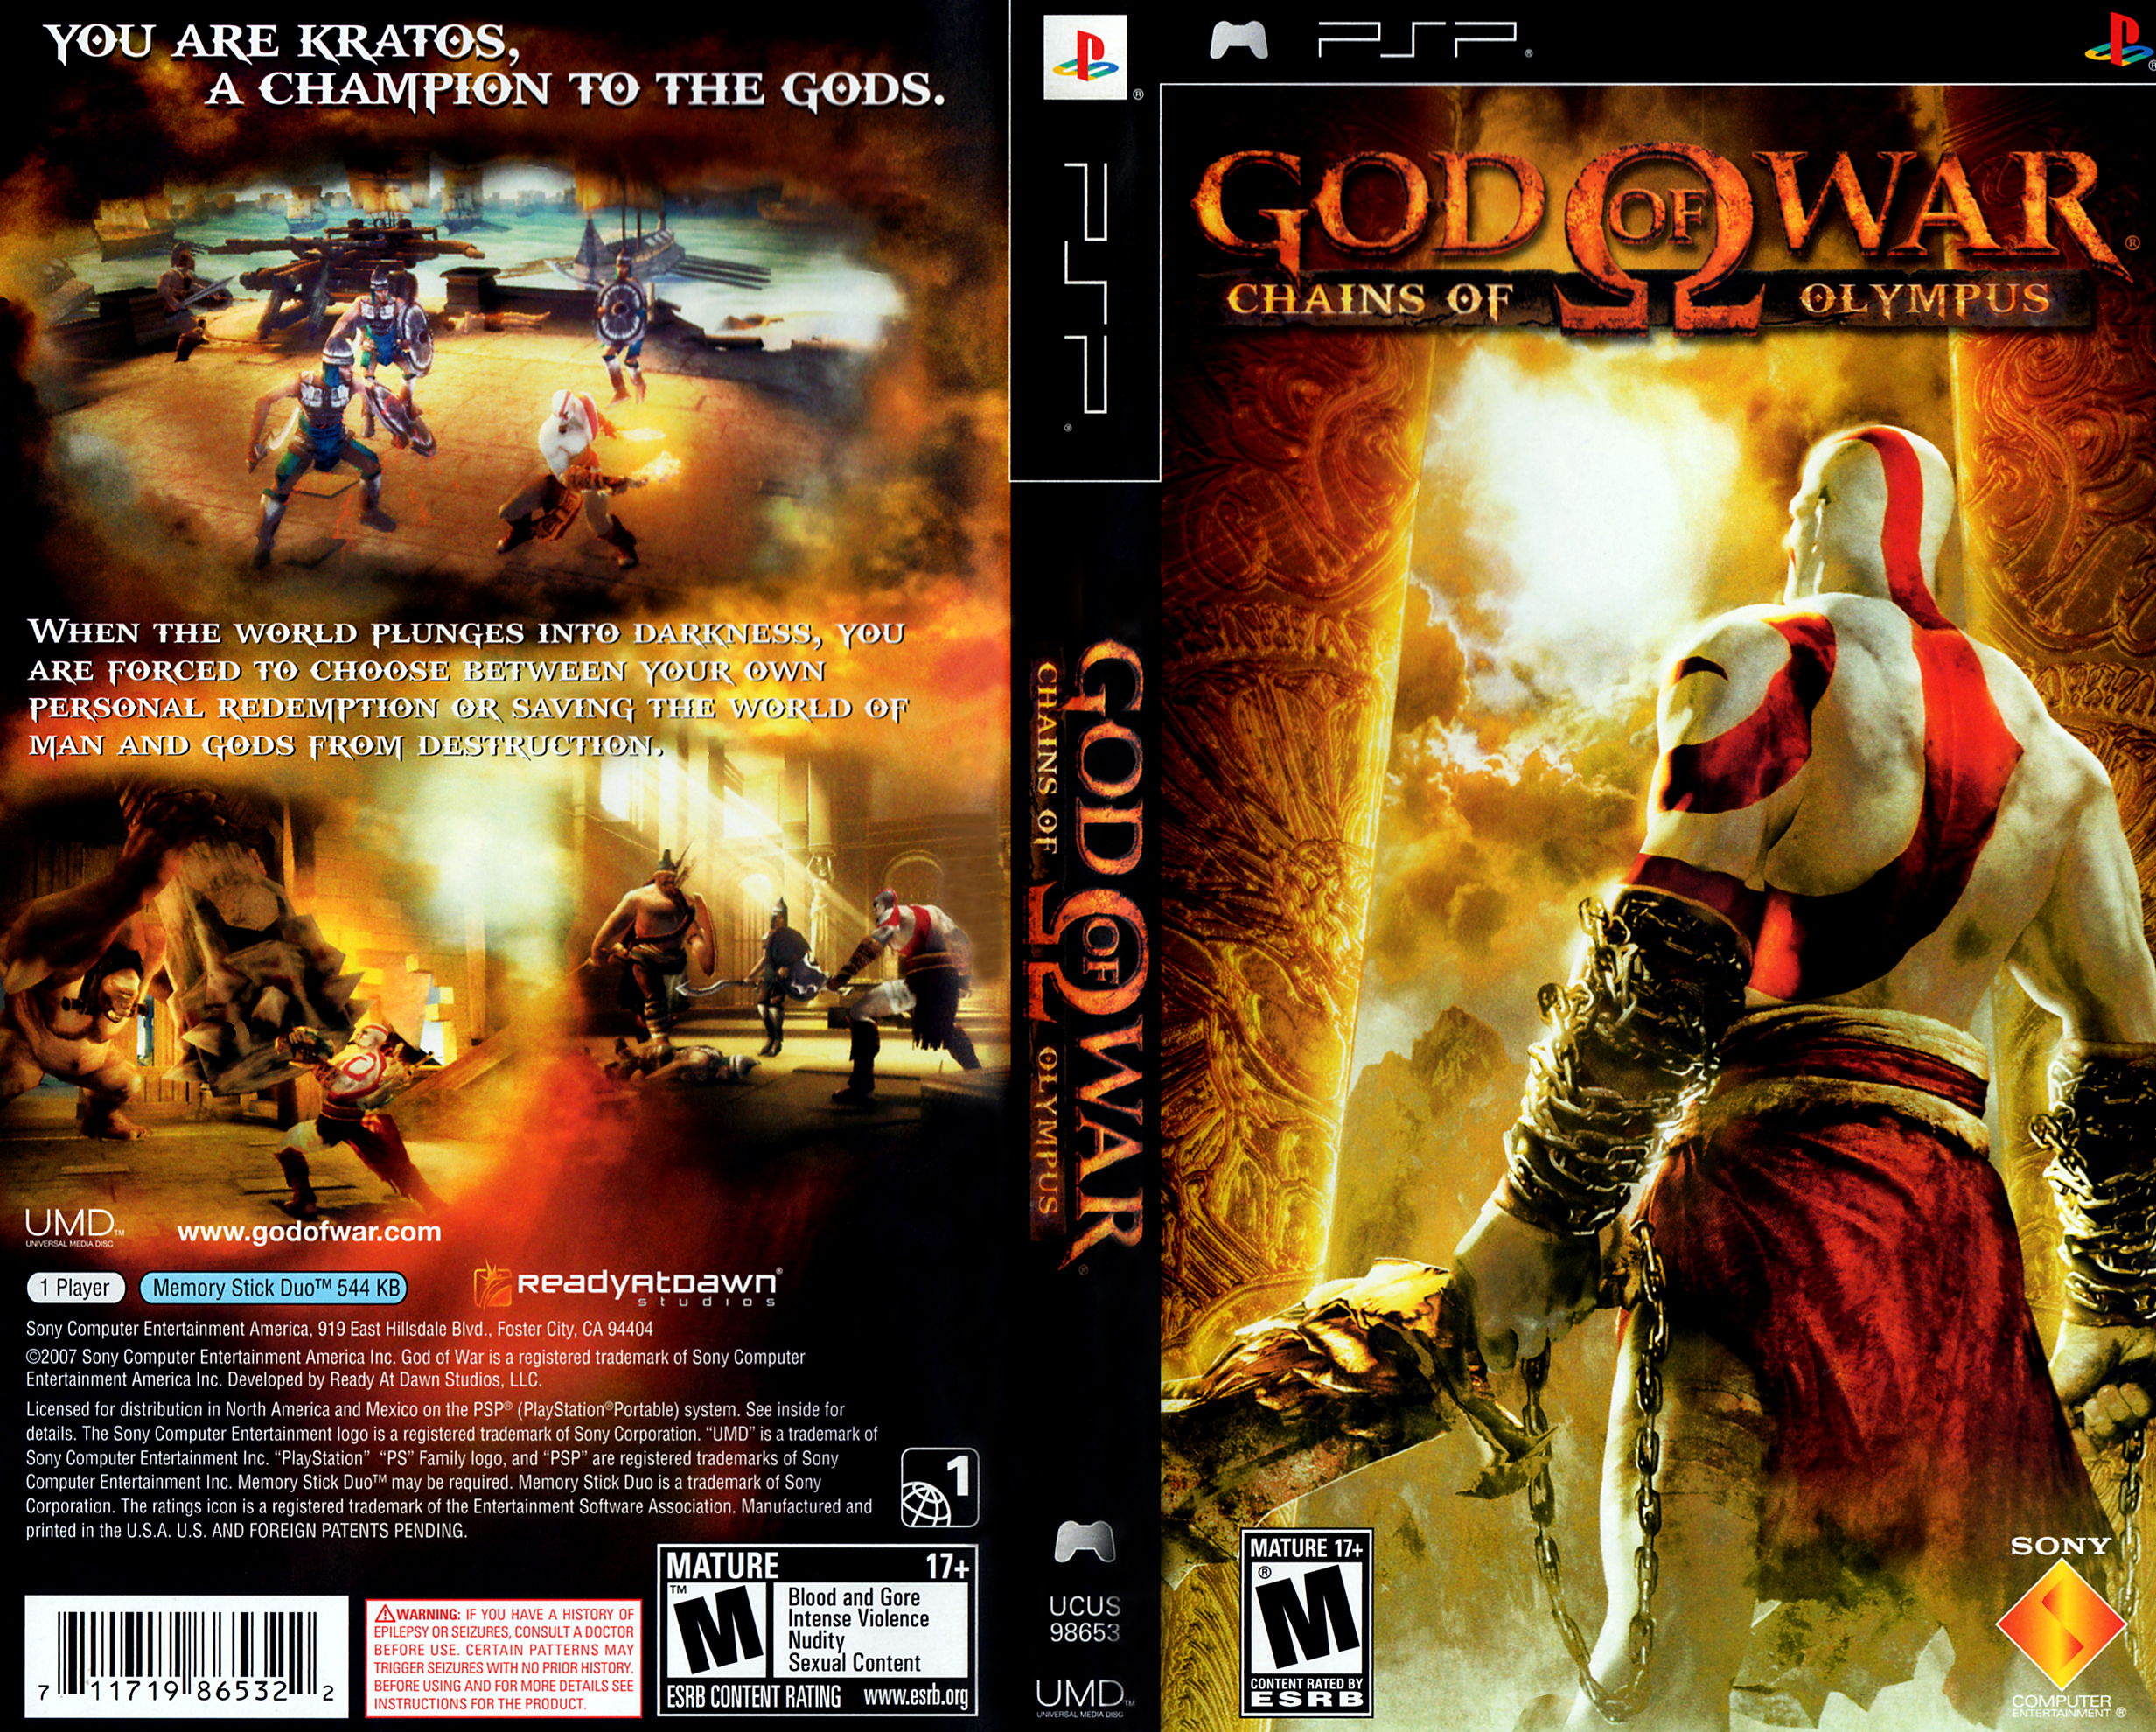 God Of War Psp : God of war chains olympus u psn rom iso download